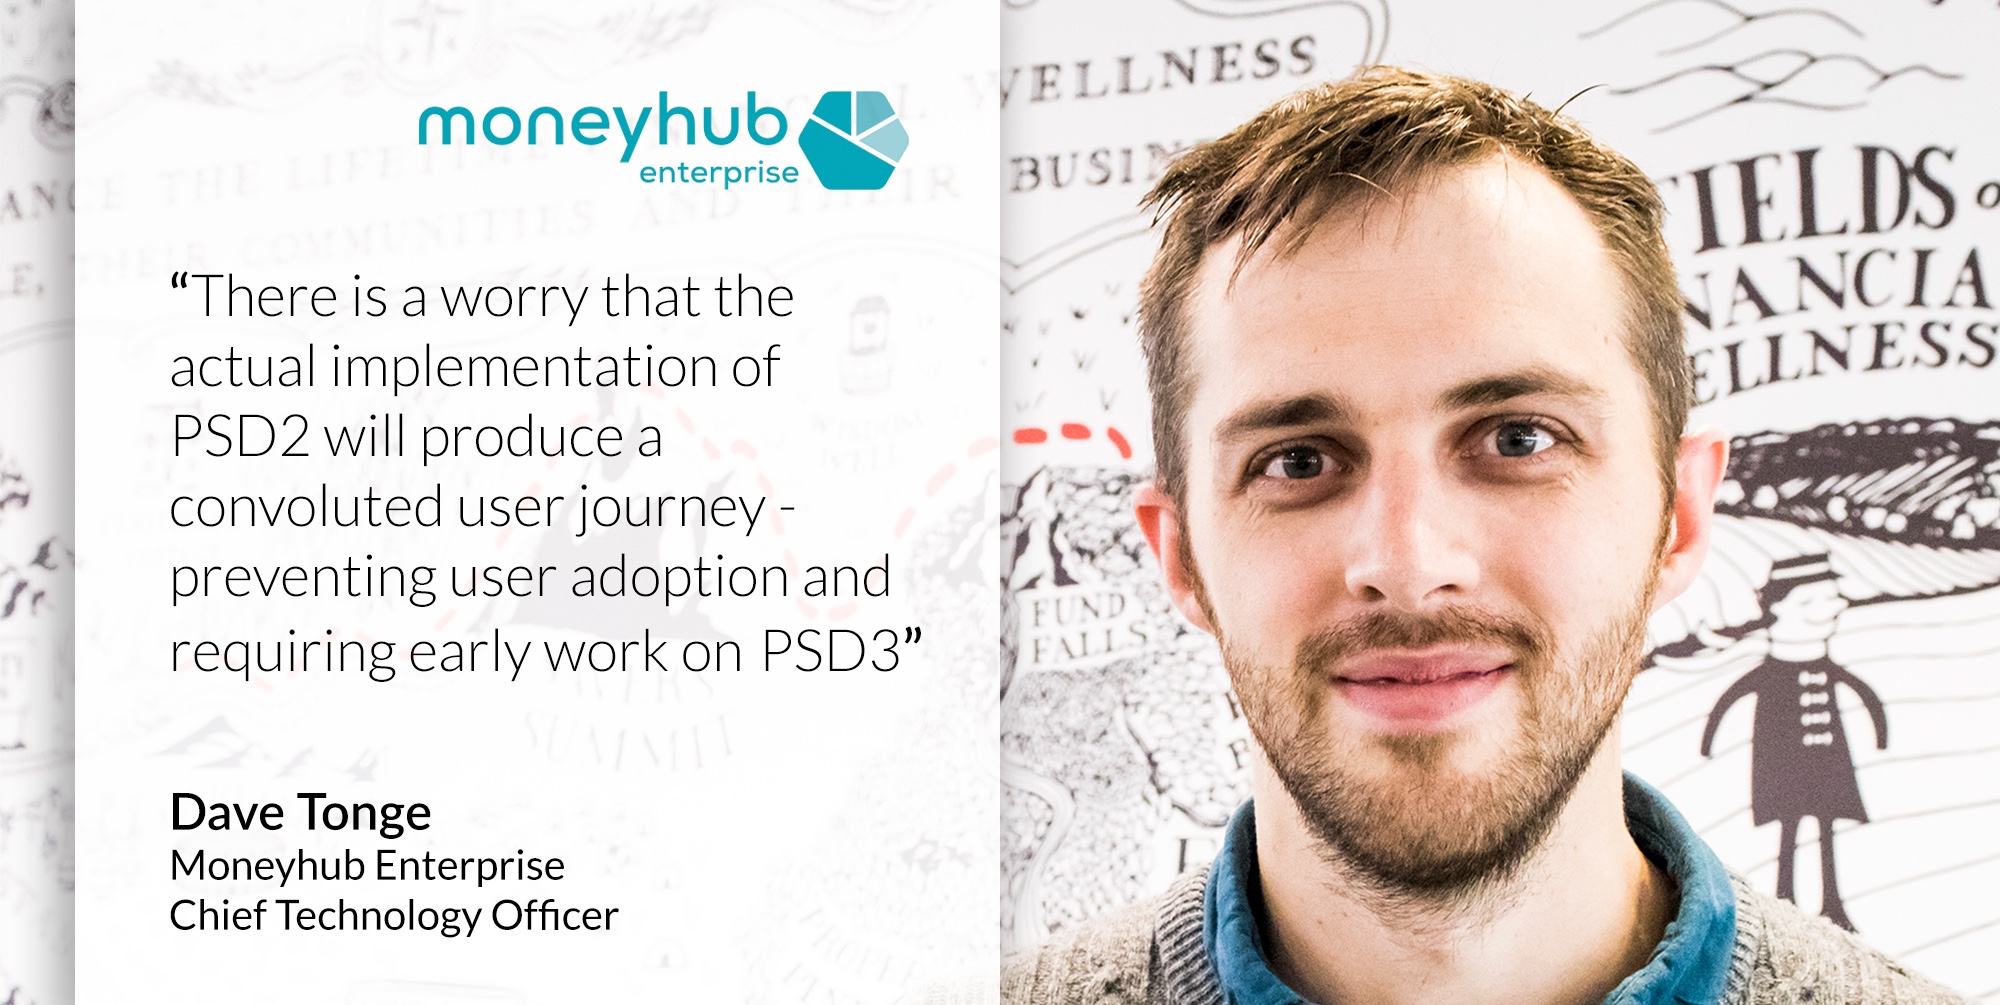 A quote from our CTO, Dave Tonge